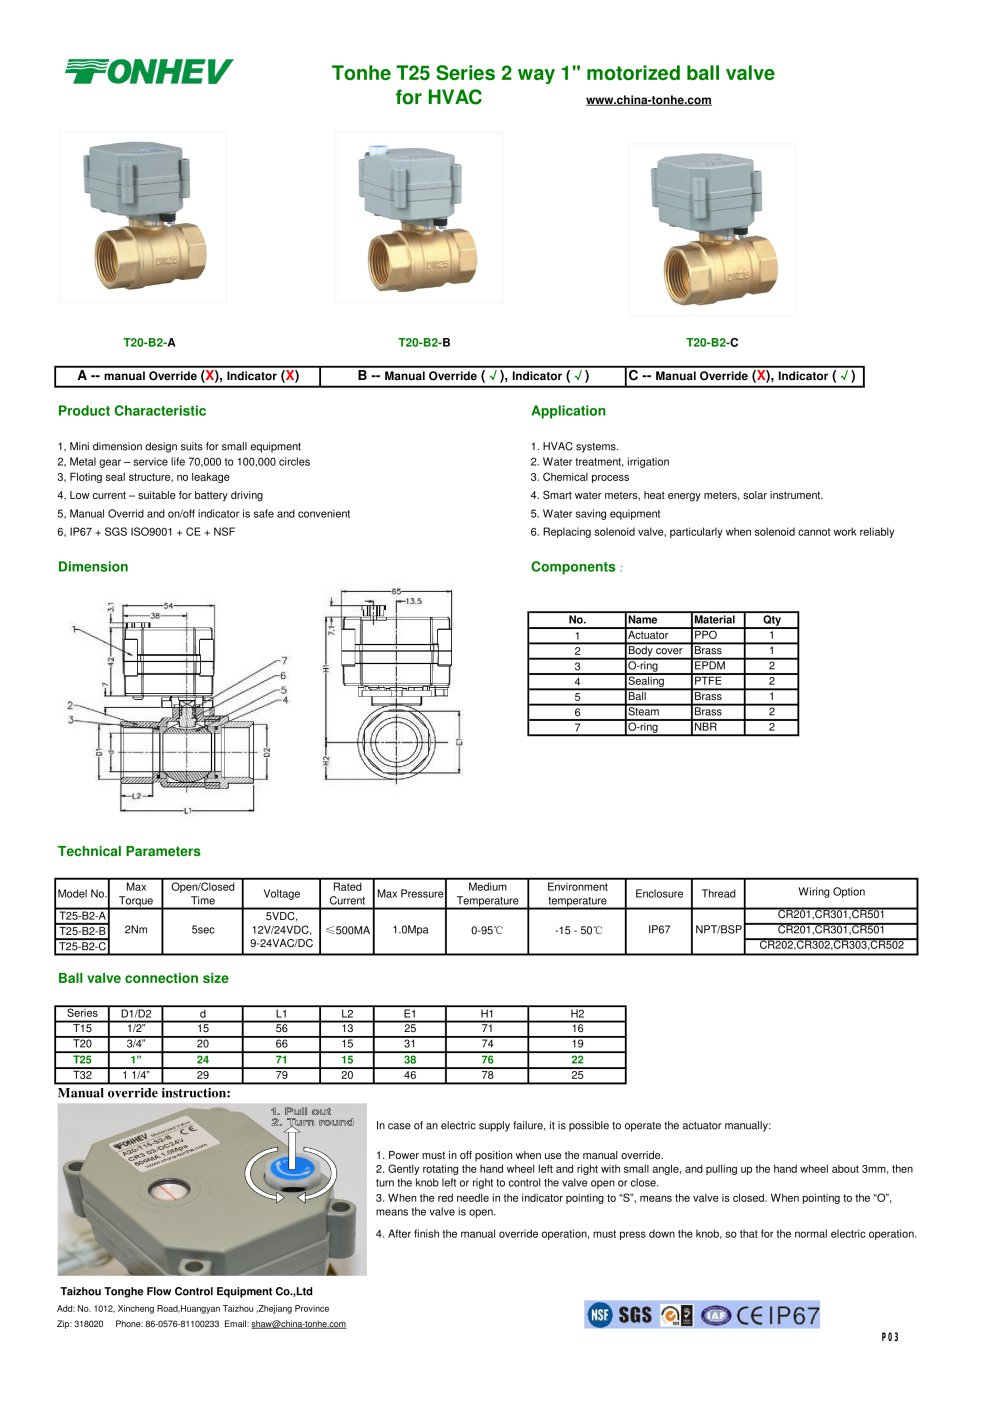 hight resolution of tonhe t25 series 2 way 1 motorized ball valve for hvac 1 1 pages